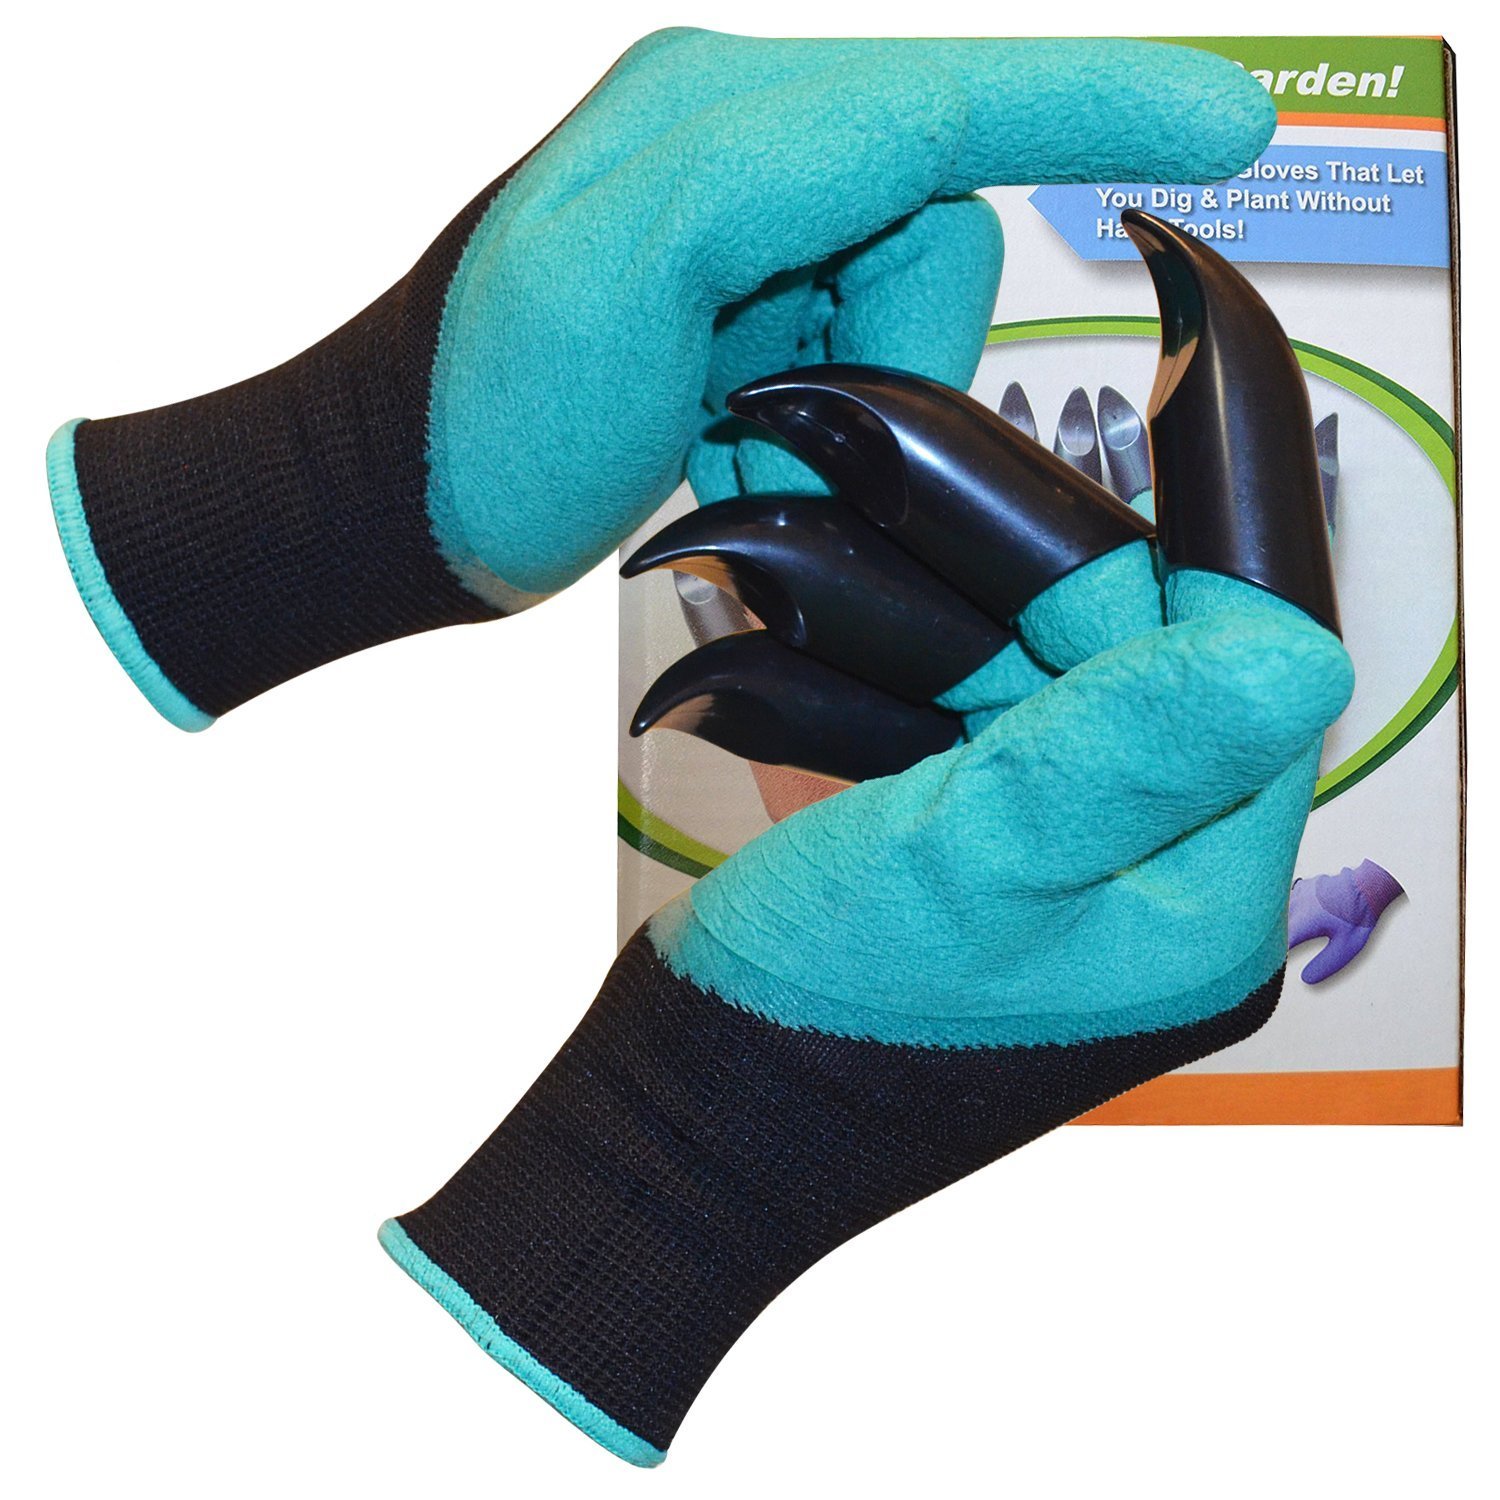 Claw Gloves For Men and Women; Claws On Right Glove For Fun Digging While Doing Outdoor Gardening; Heavy Duty Waterproof Green Rubber With Cool Knit Back of Hand; Medium Size Fits Most by Grow For It